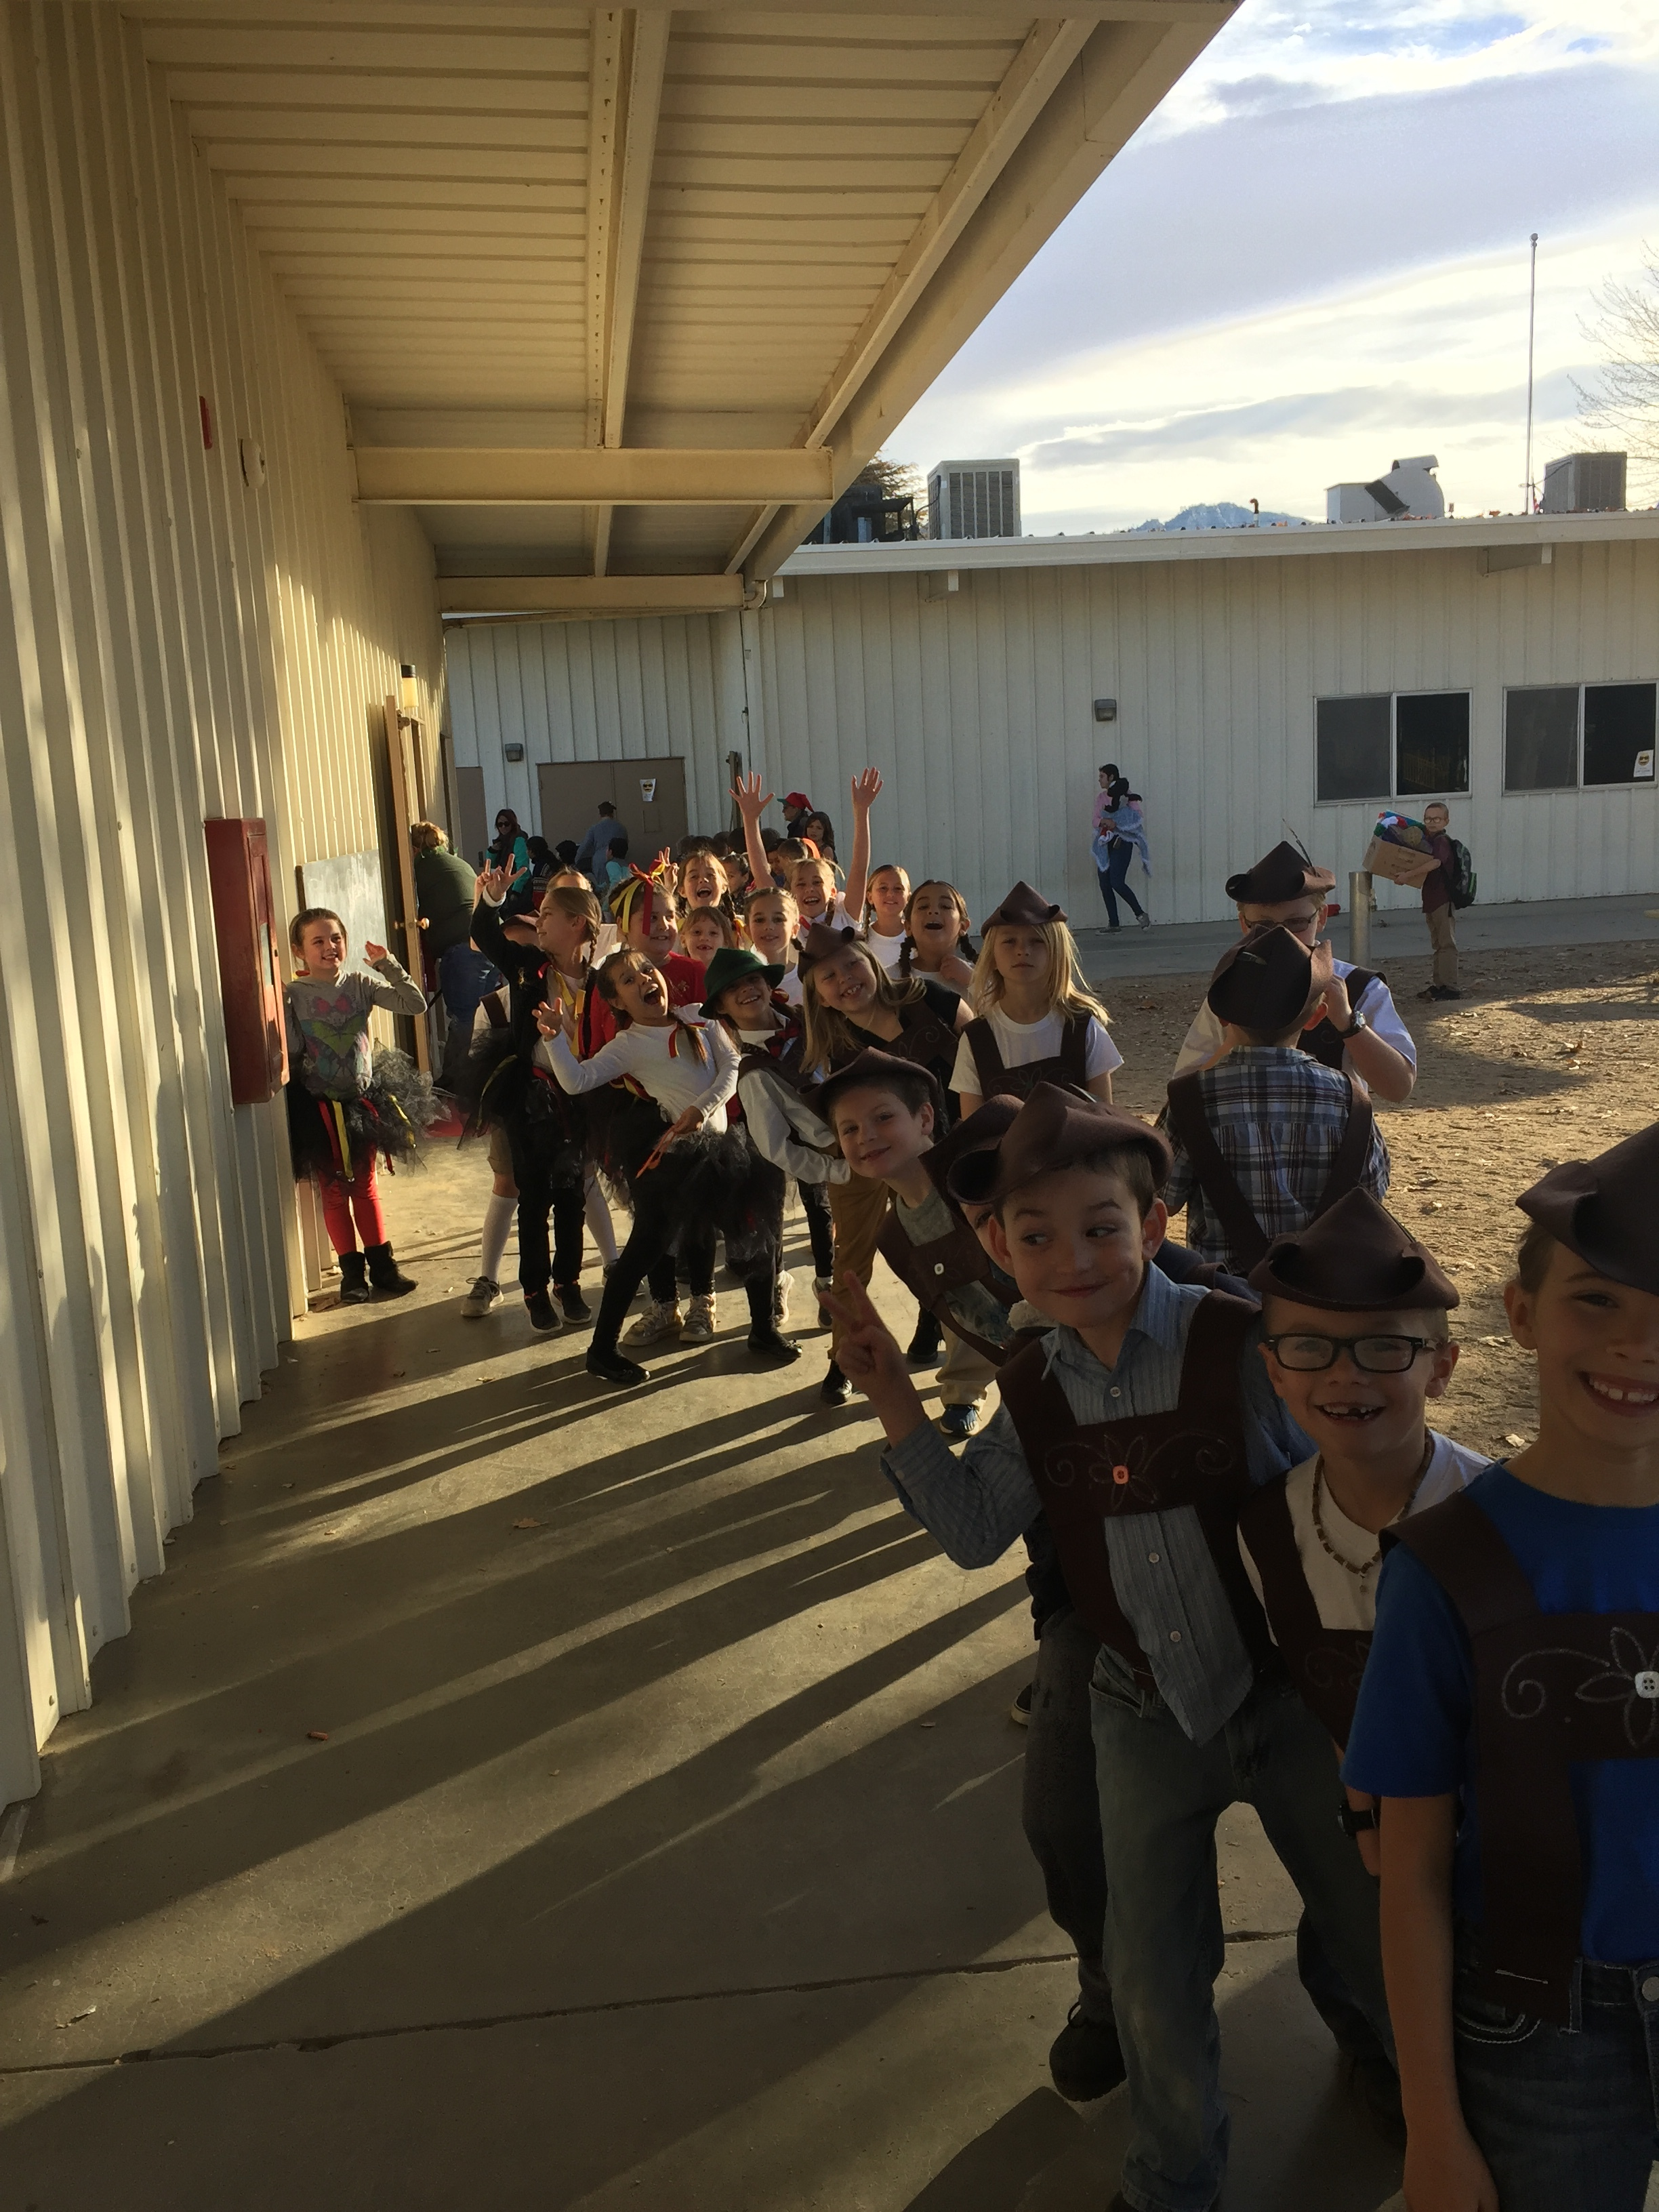 Kids lining up for class